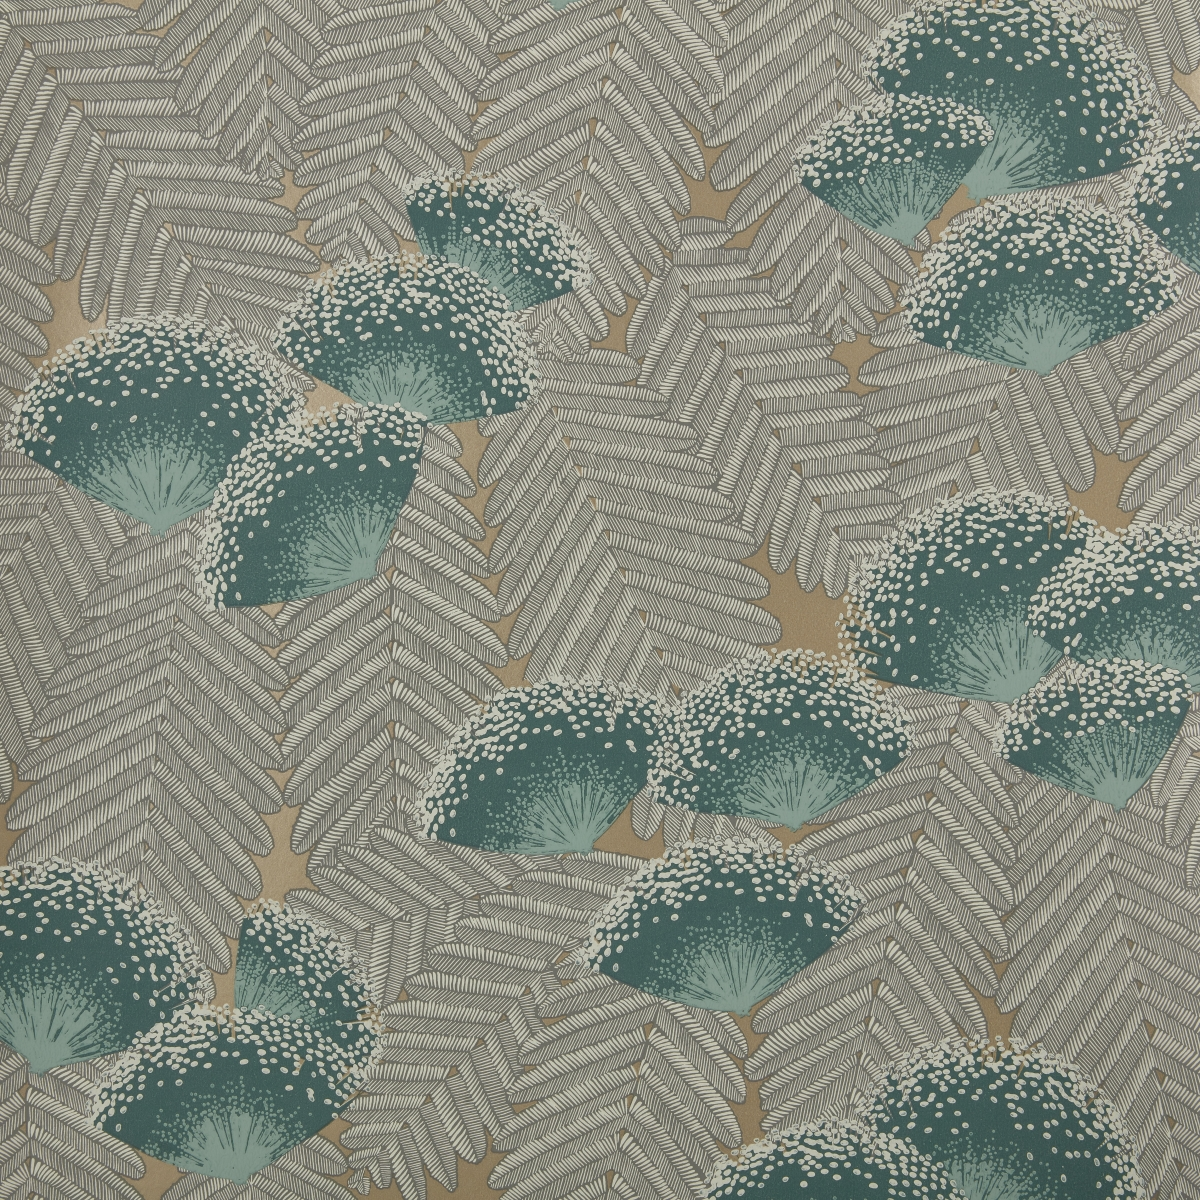 Tapet Art Deco, Clarice, 1838 Wallcoverings, 5.3mp / rola